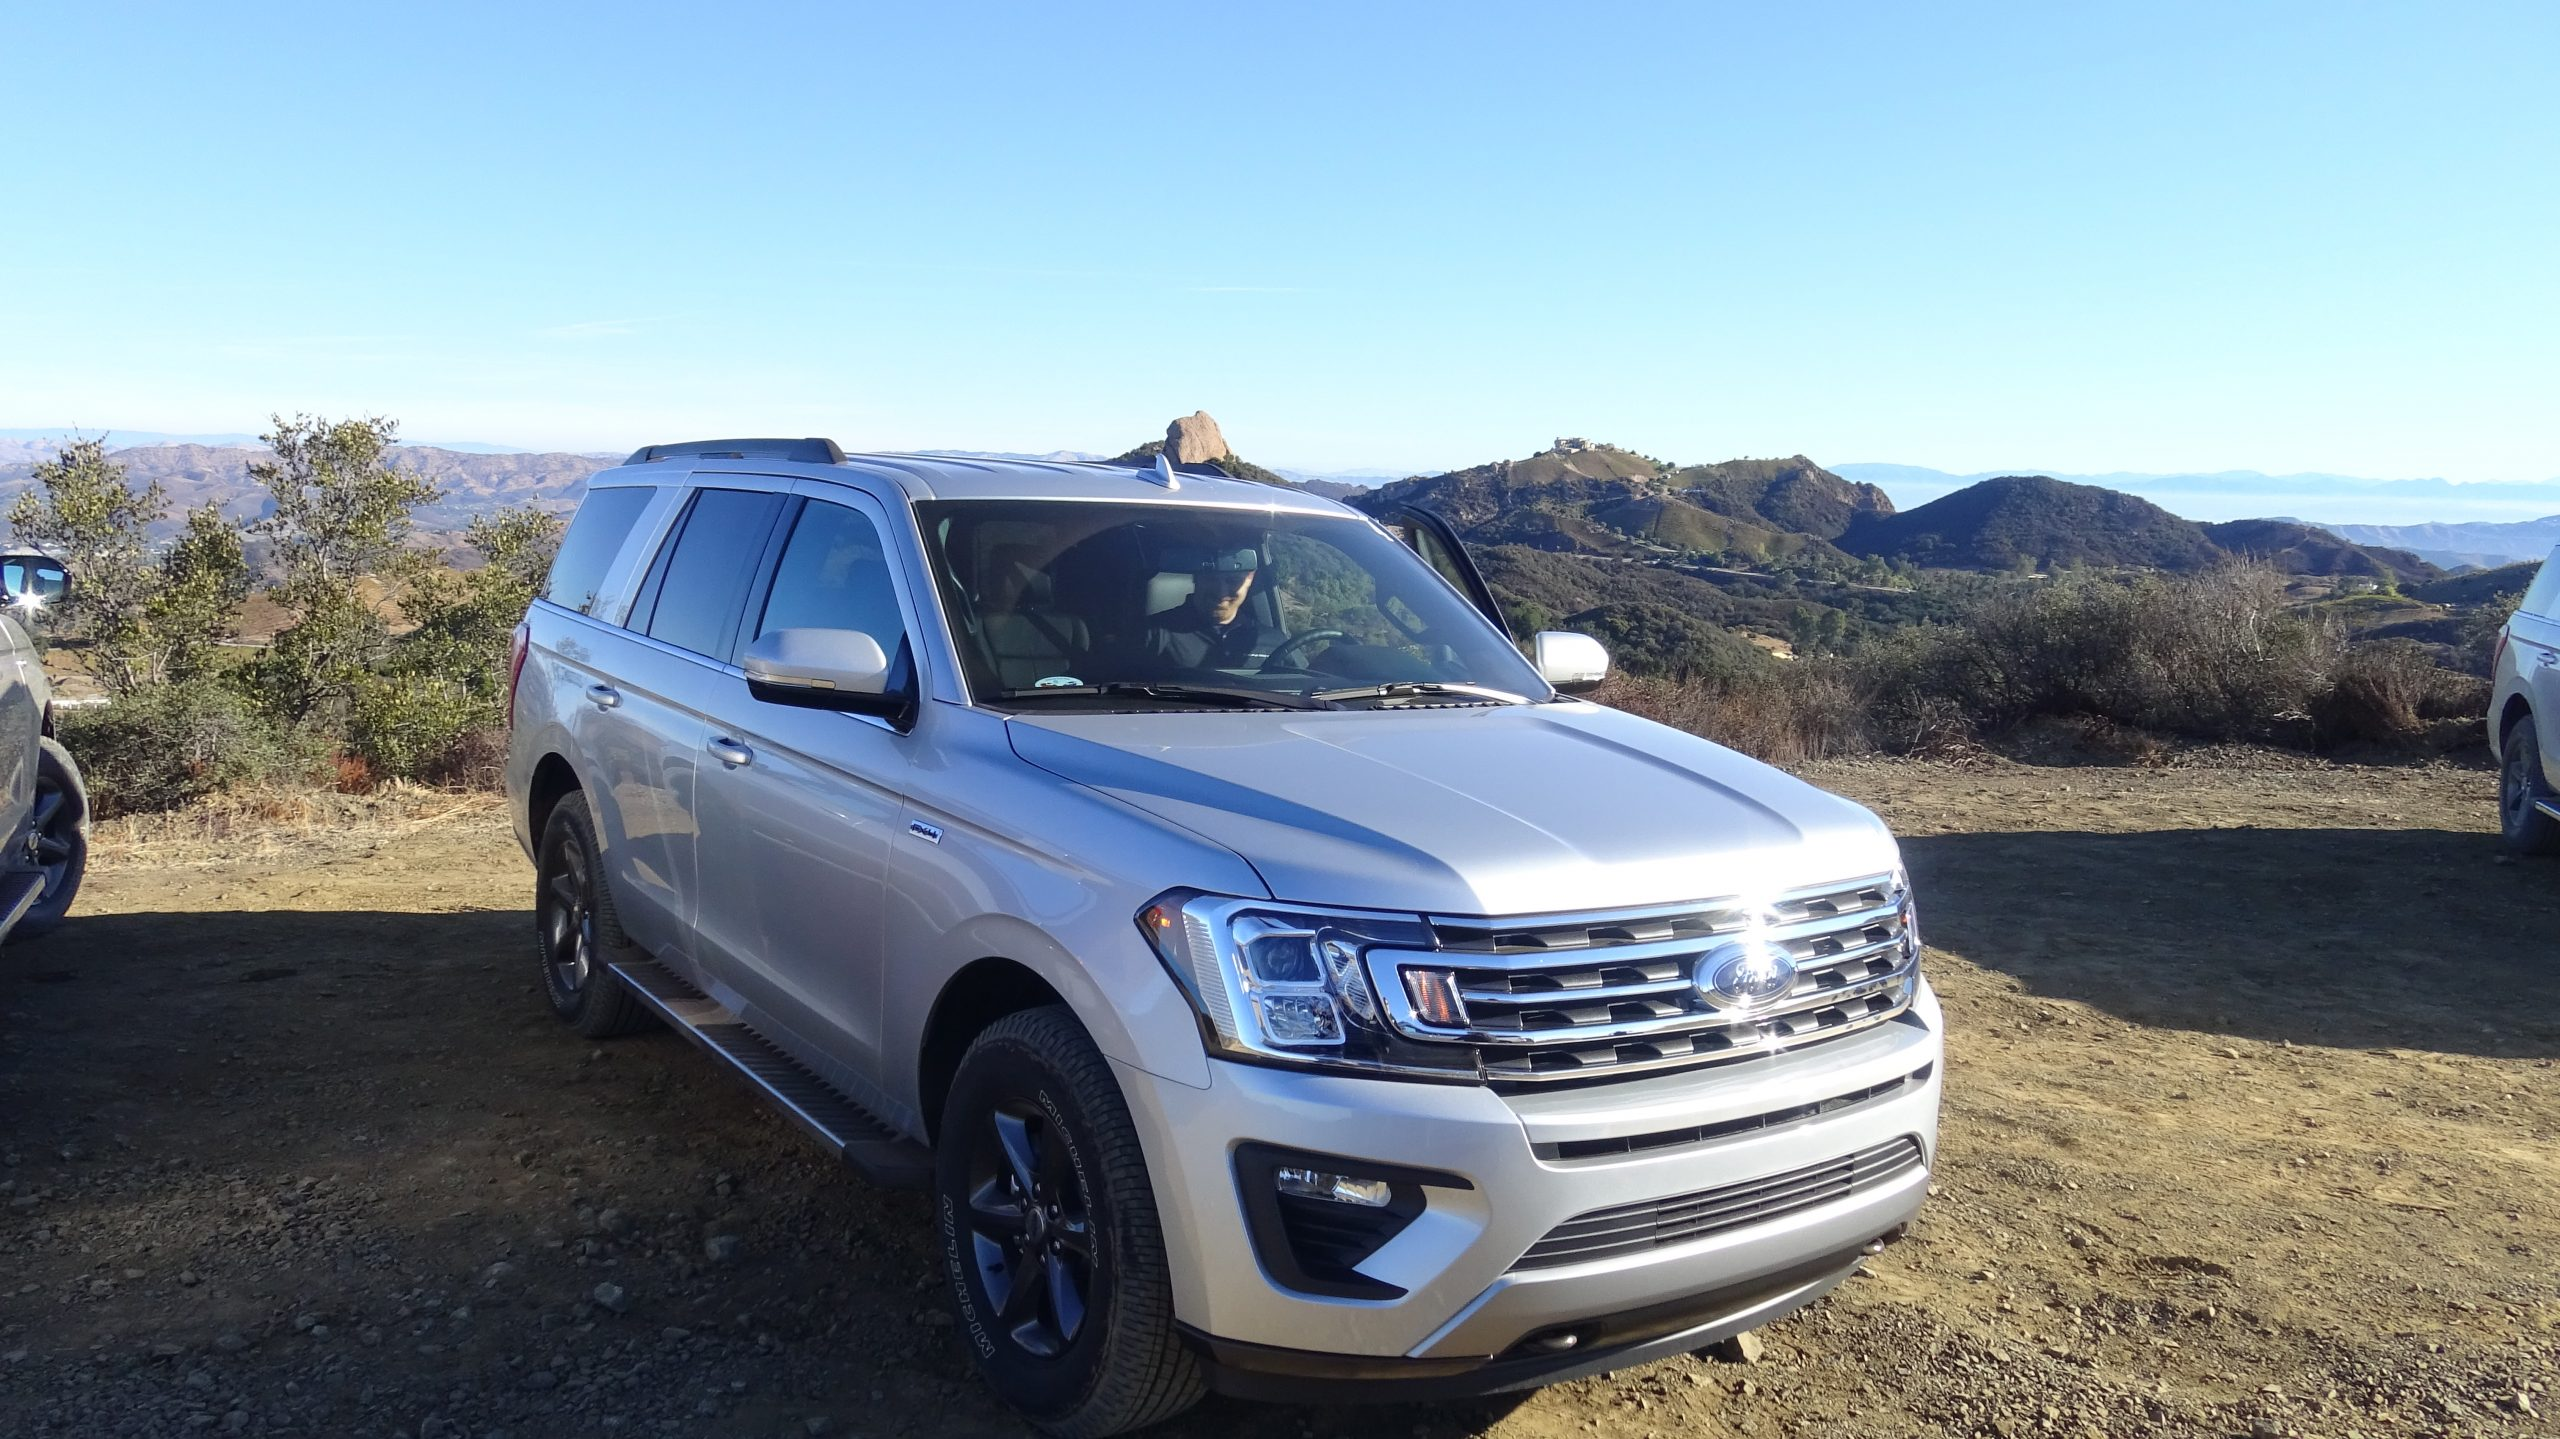 According To Todd Hoevener Expedition Chief Engineer The  Expedition Has A Higher Belt Line More Angle To The Pillars More Functional Luggage Rack